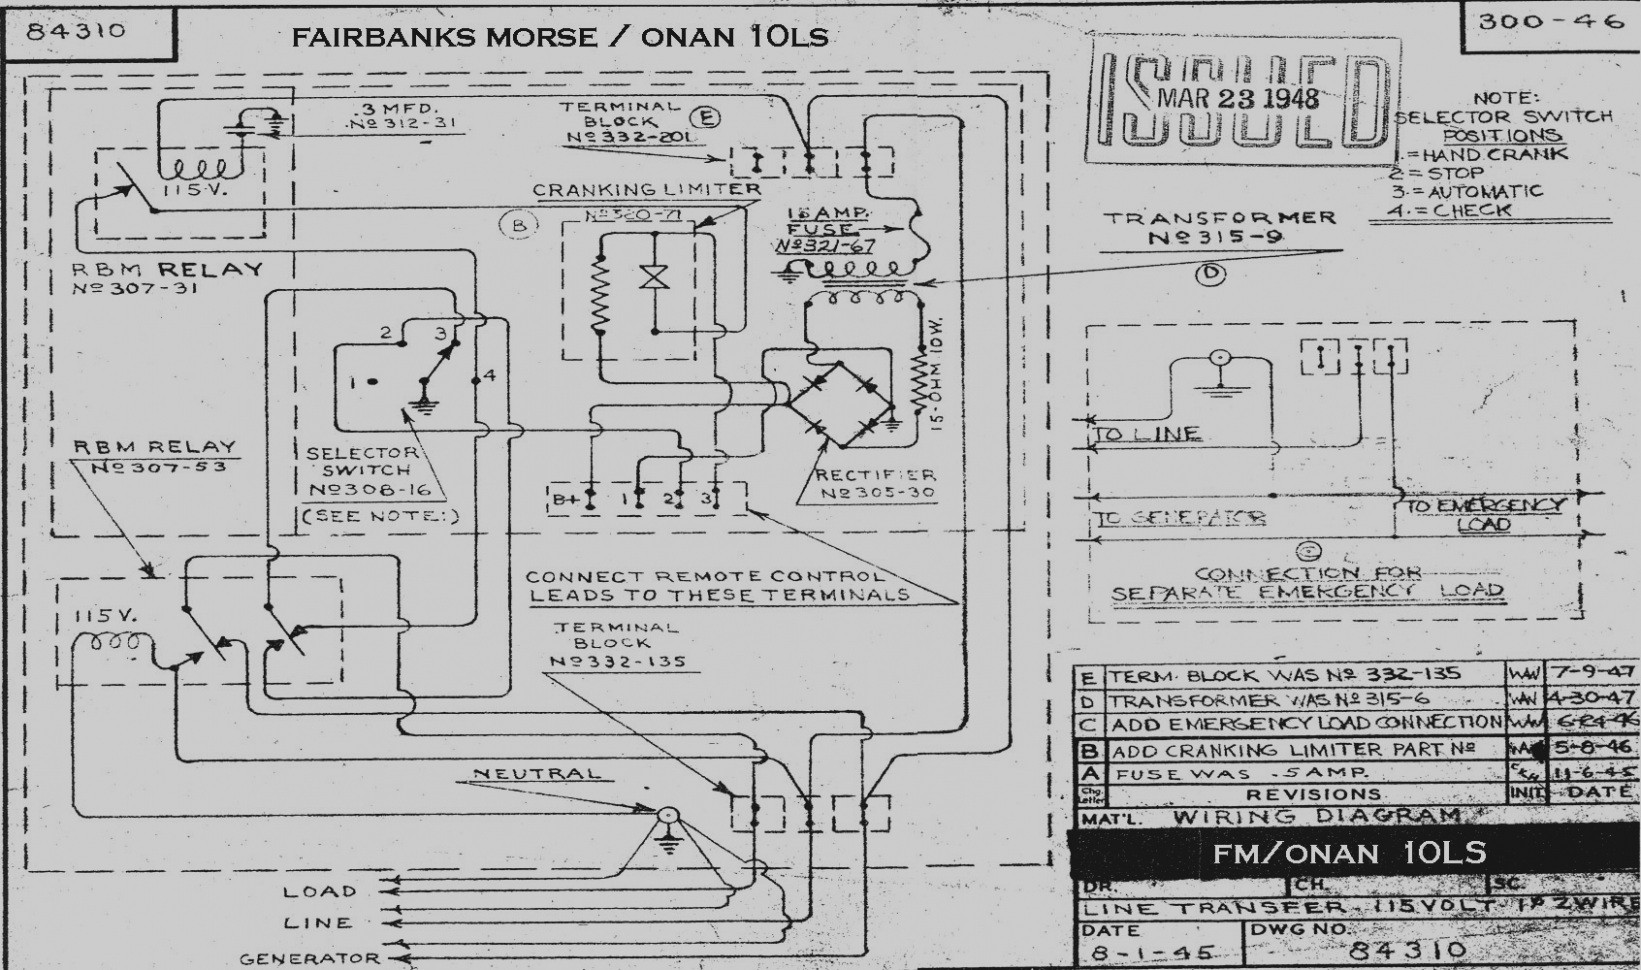 Wiring Diagram Onan Genset Emerald 1 - Data Wiring Diagram Today